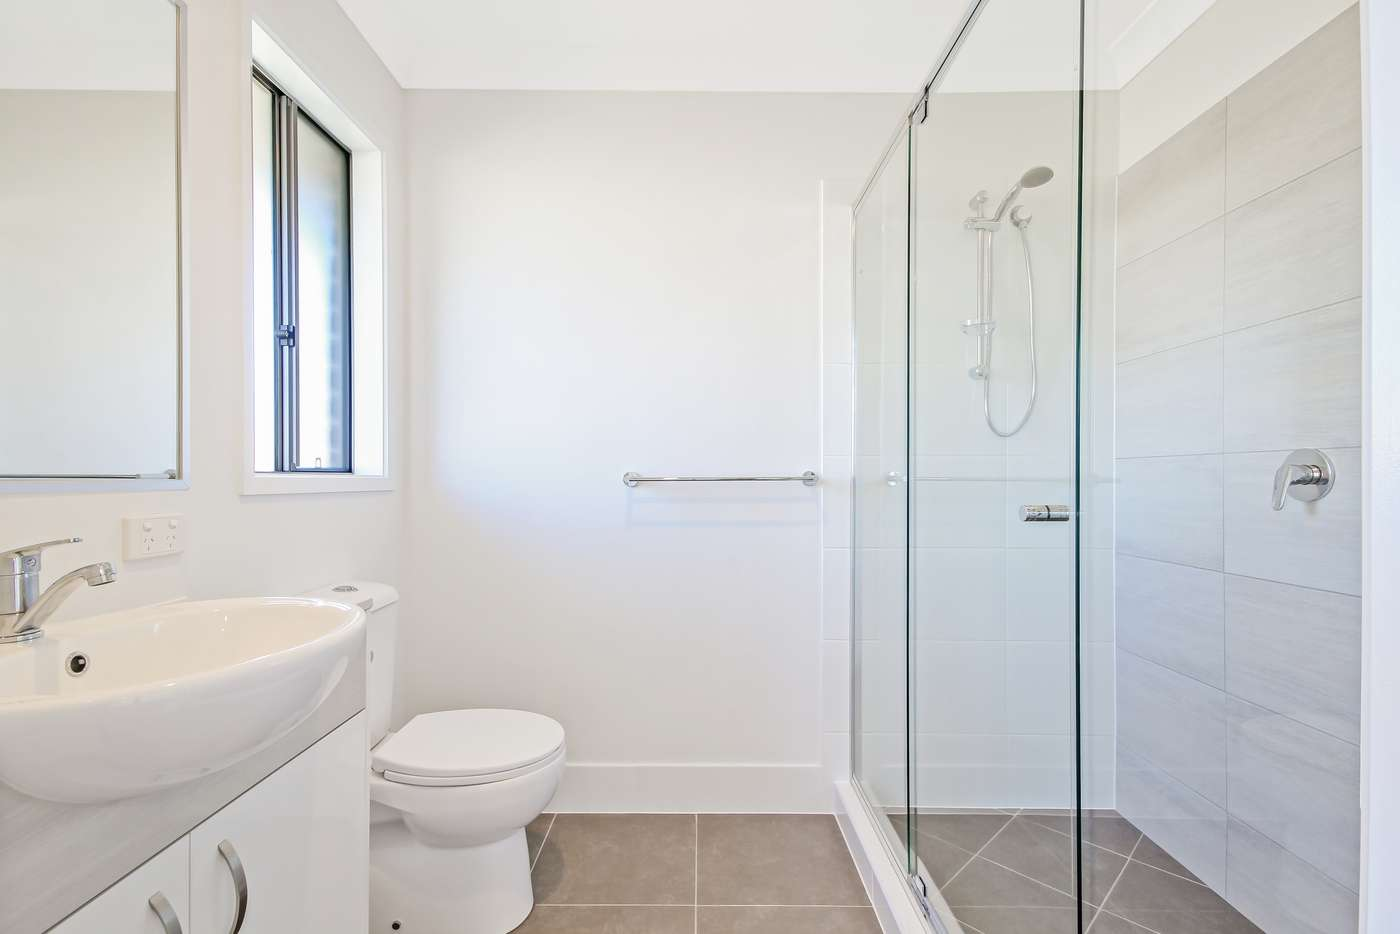 Sixth view of Homely house listing, 32 Sunseeker Street, Burpengary QLD 4505